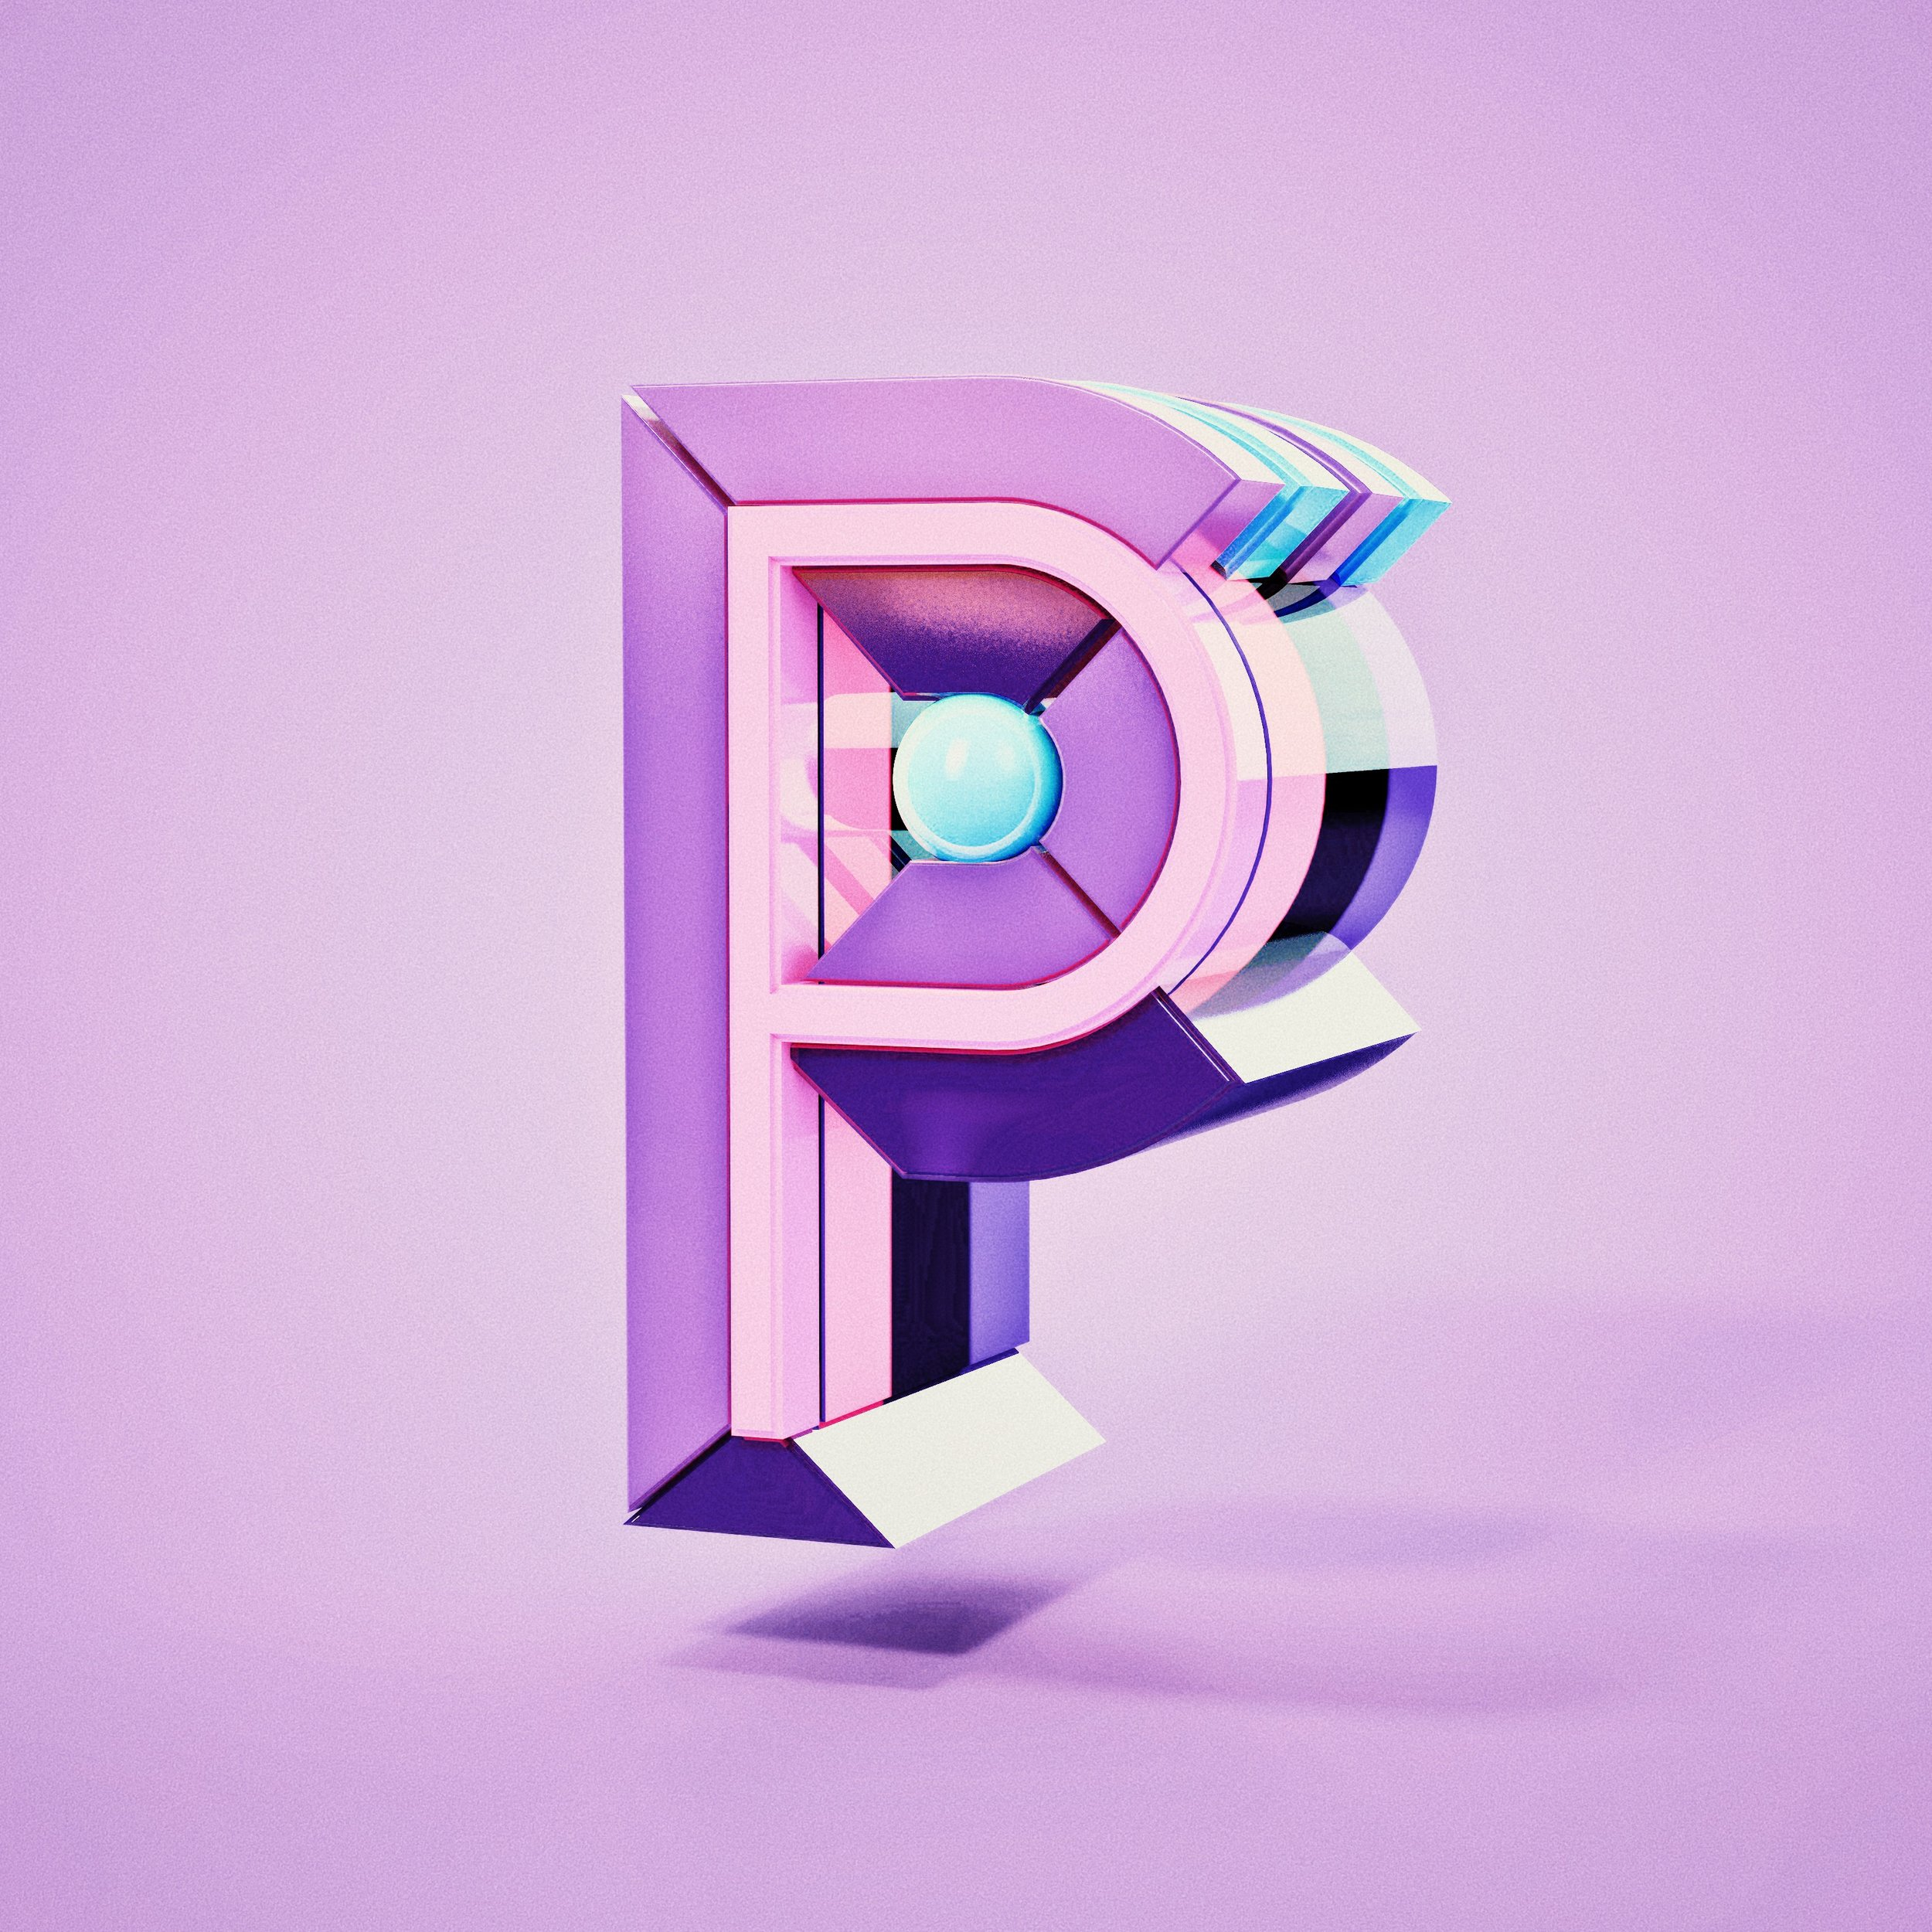 Day 16: Letter P